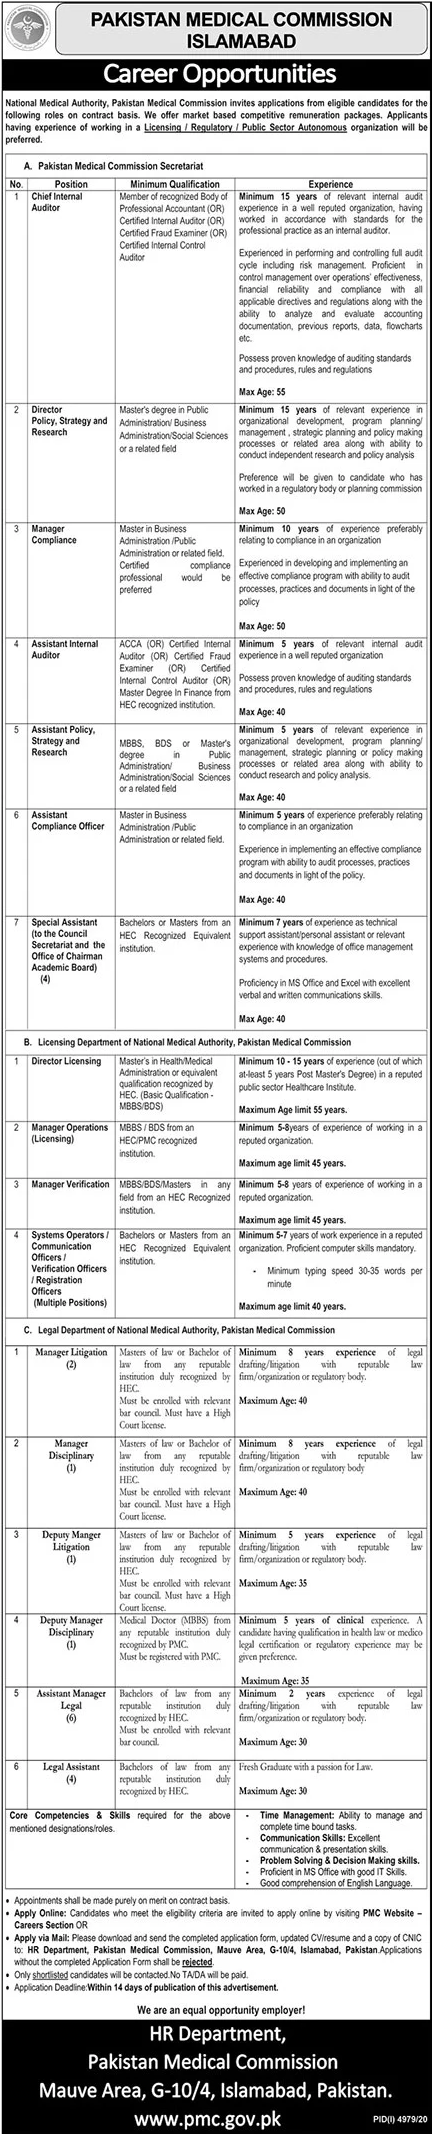 Pakistan Medical Commission PMC Jobs 2021 in Islamabad